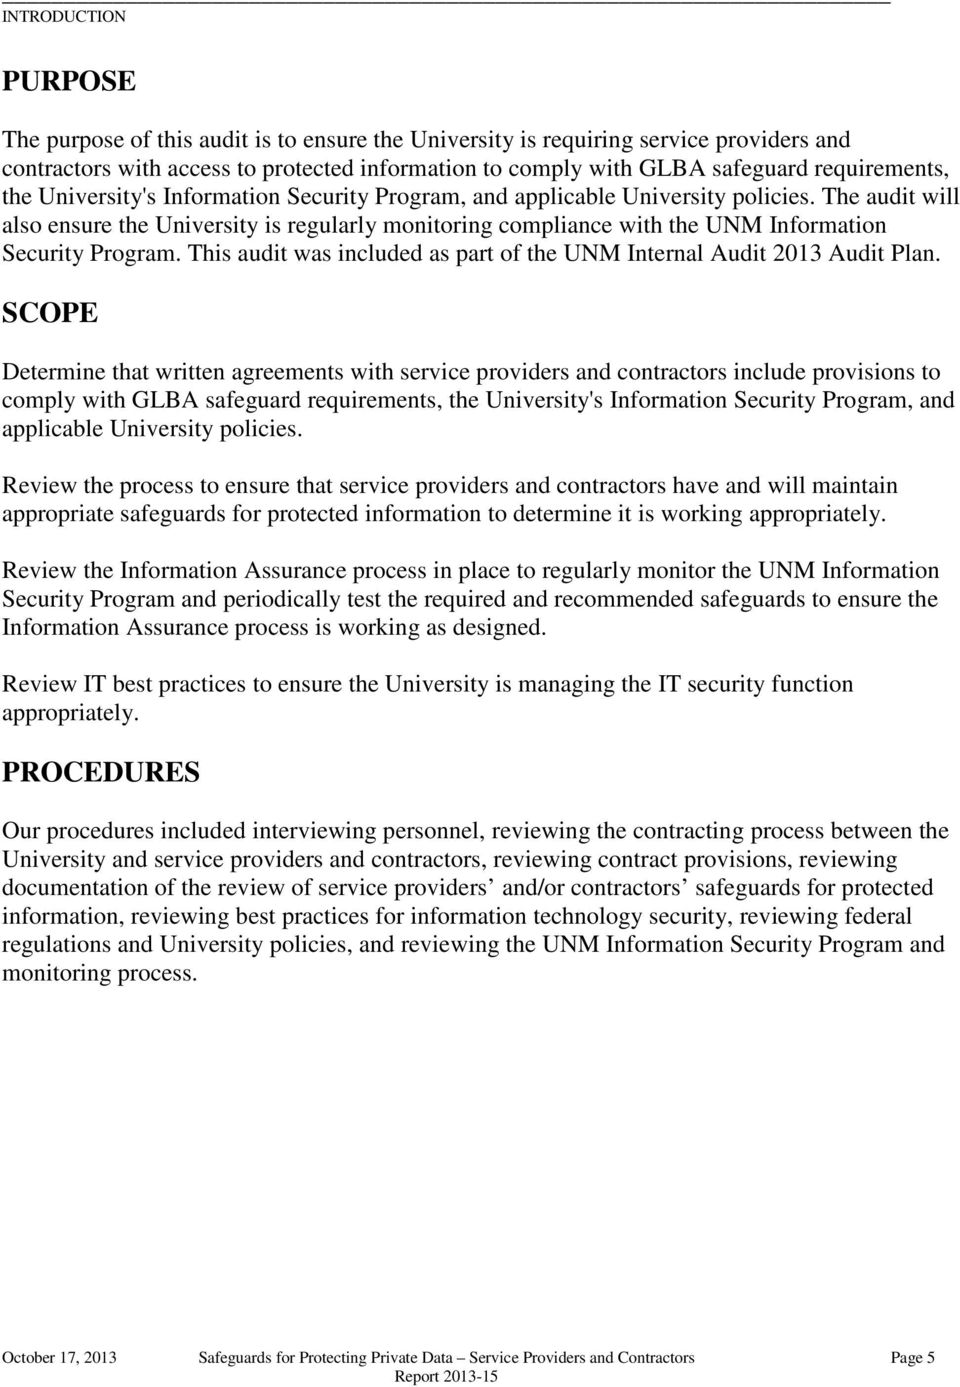 The audit will also ensure the University is regularly monitoring compliance with the UNM Information Security Program. This audit was included as part of the UNM Internal Audit 2013 Audit Plan.